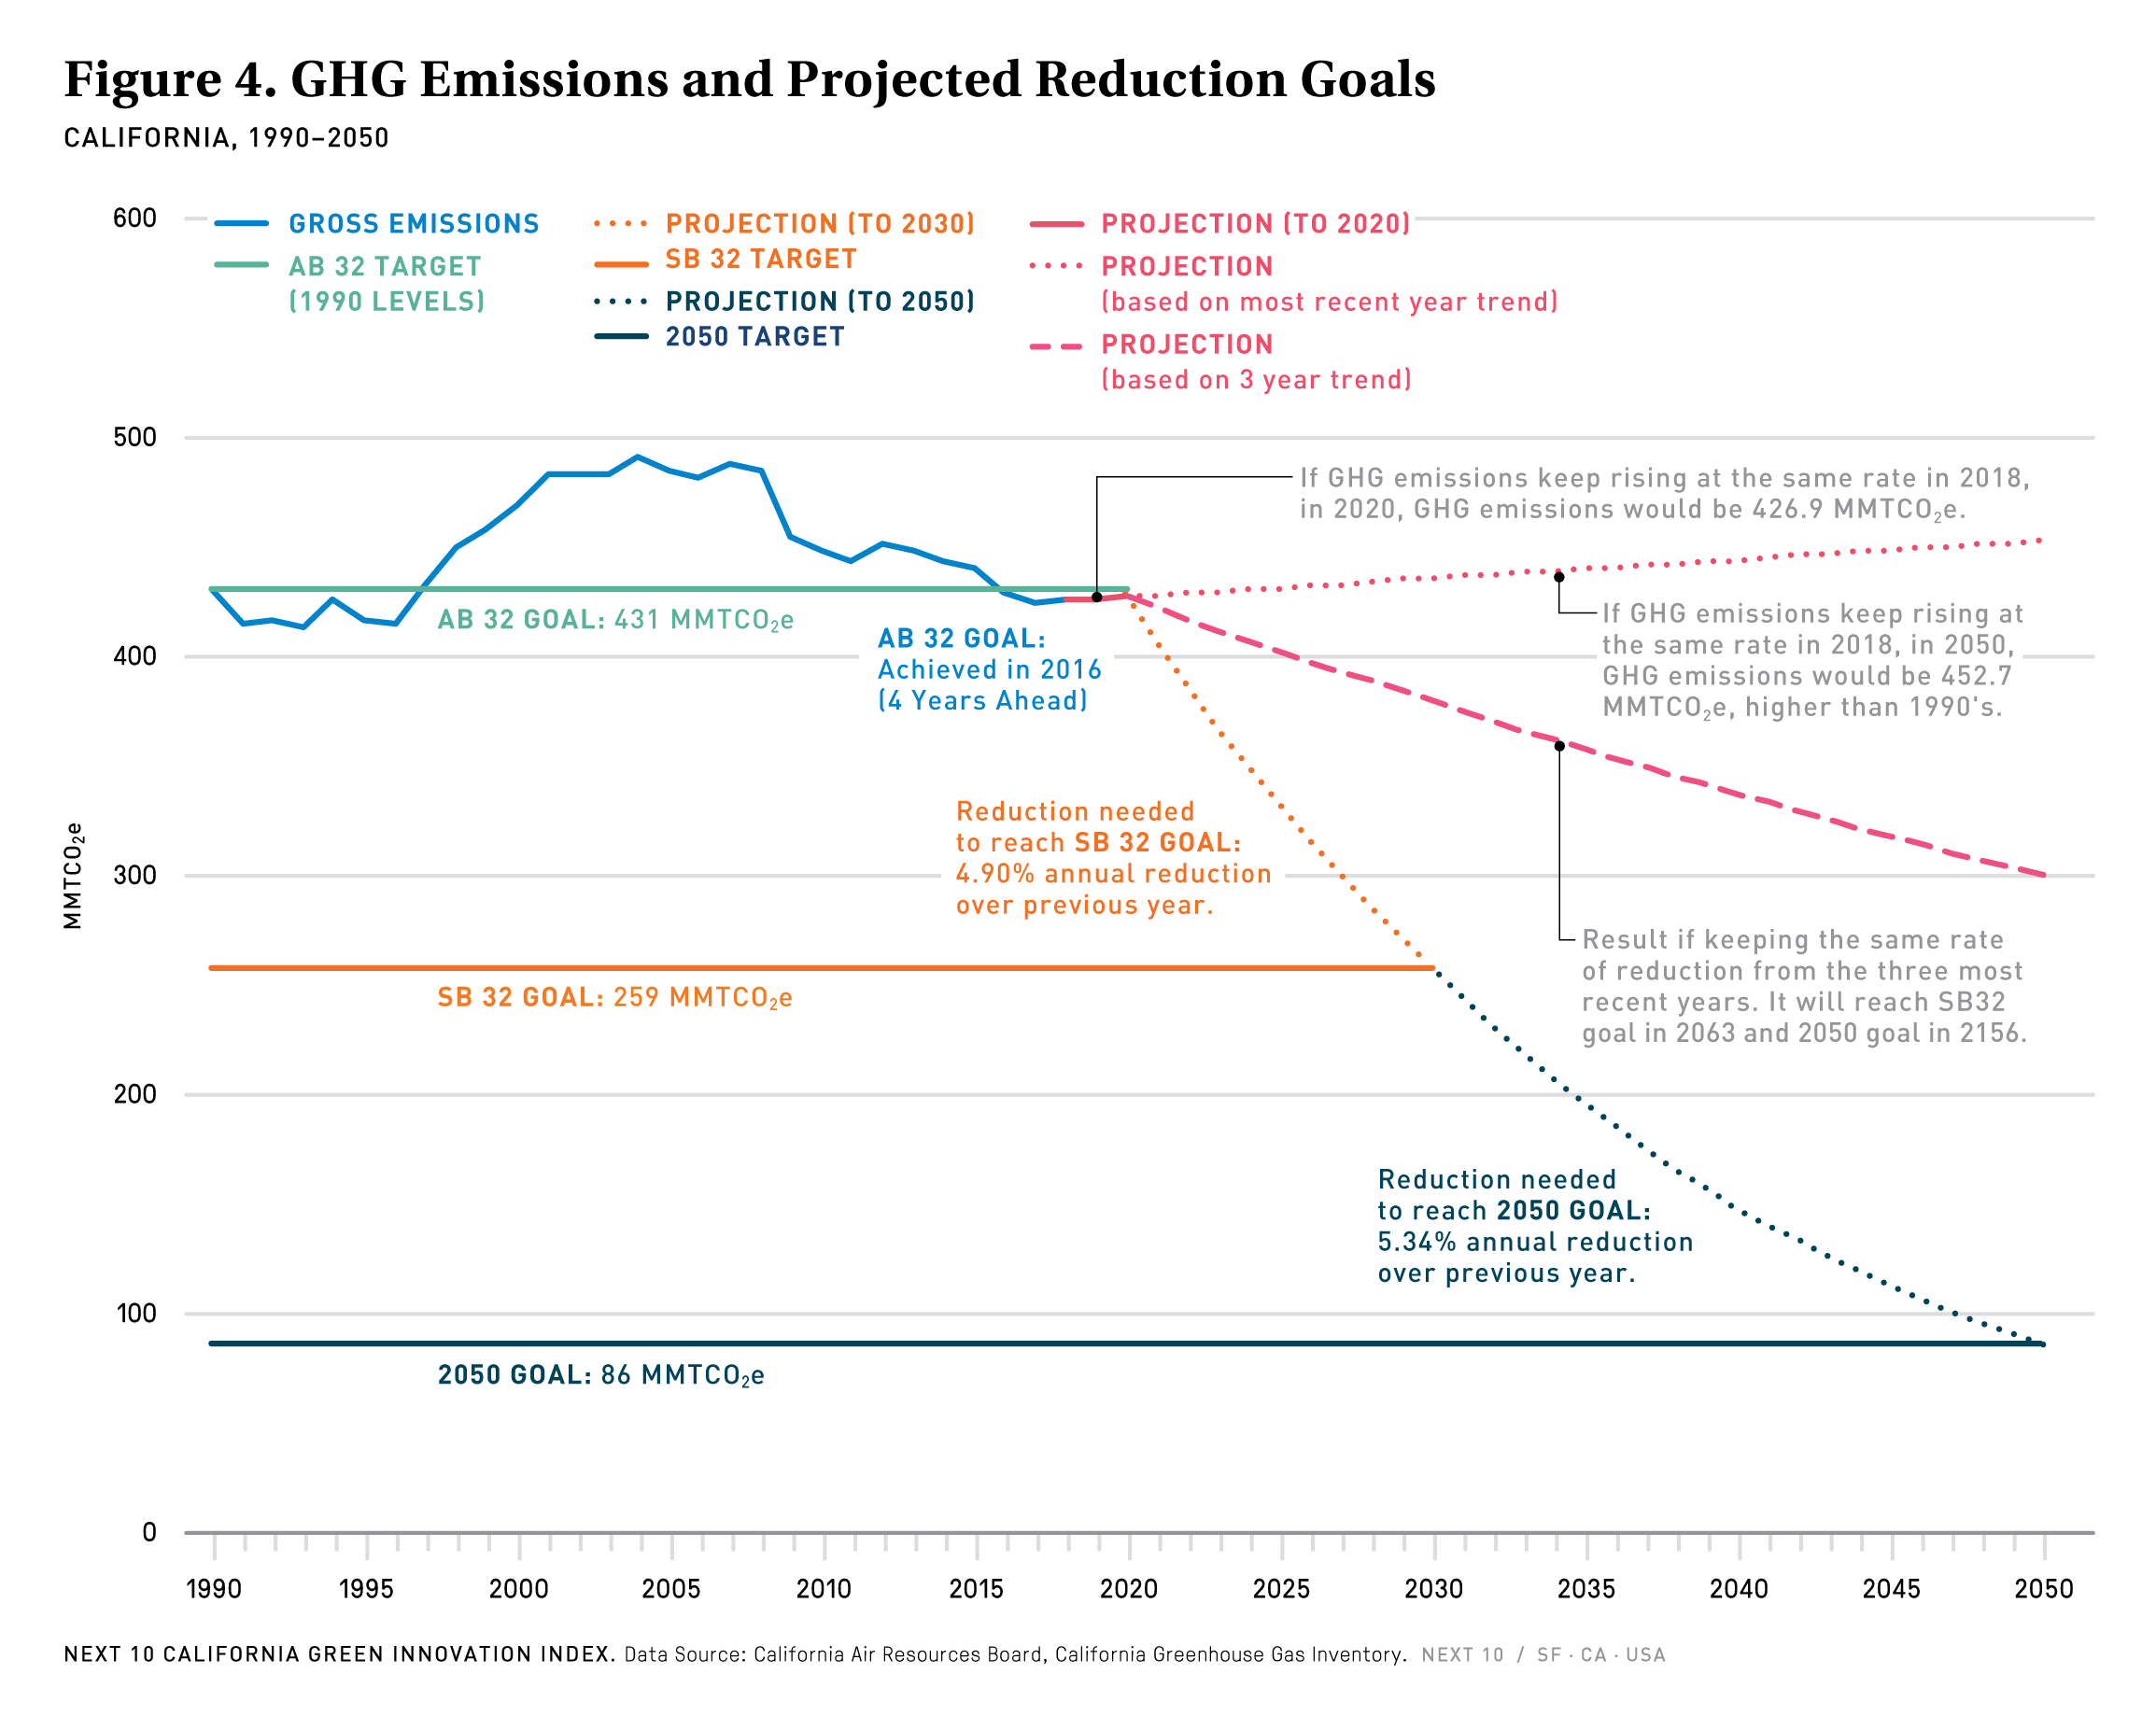 Figure 4. GHG Emissions and Projected Reduction Goals